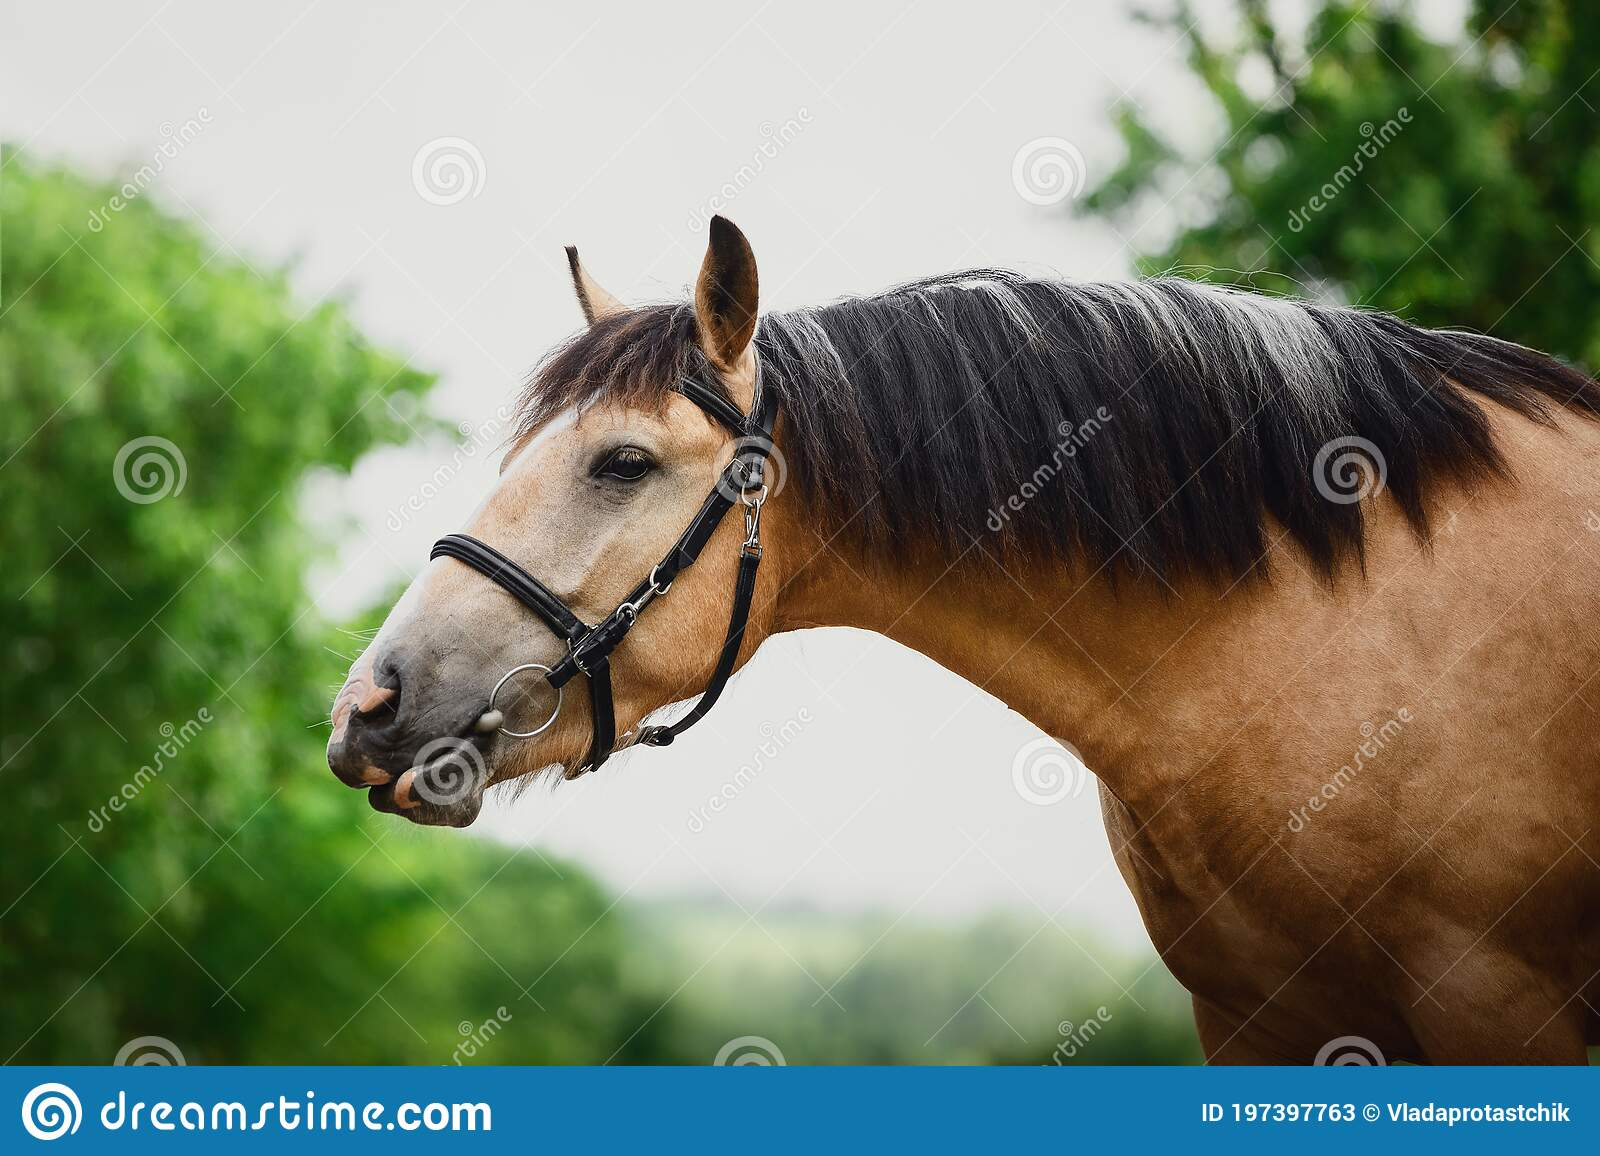 Young Draft Buckskin Gelding Horse In Bridle On Sky And Trees Background In Summer Stock Image Image Of Little Meadow 197397763